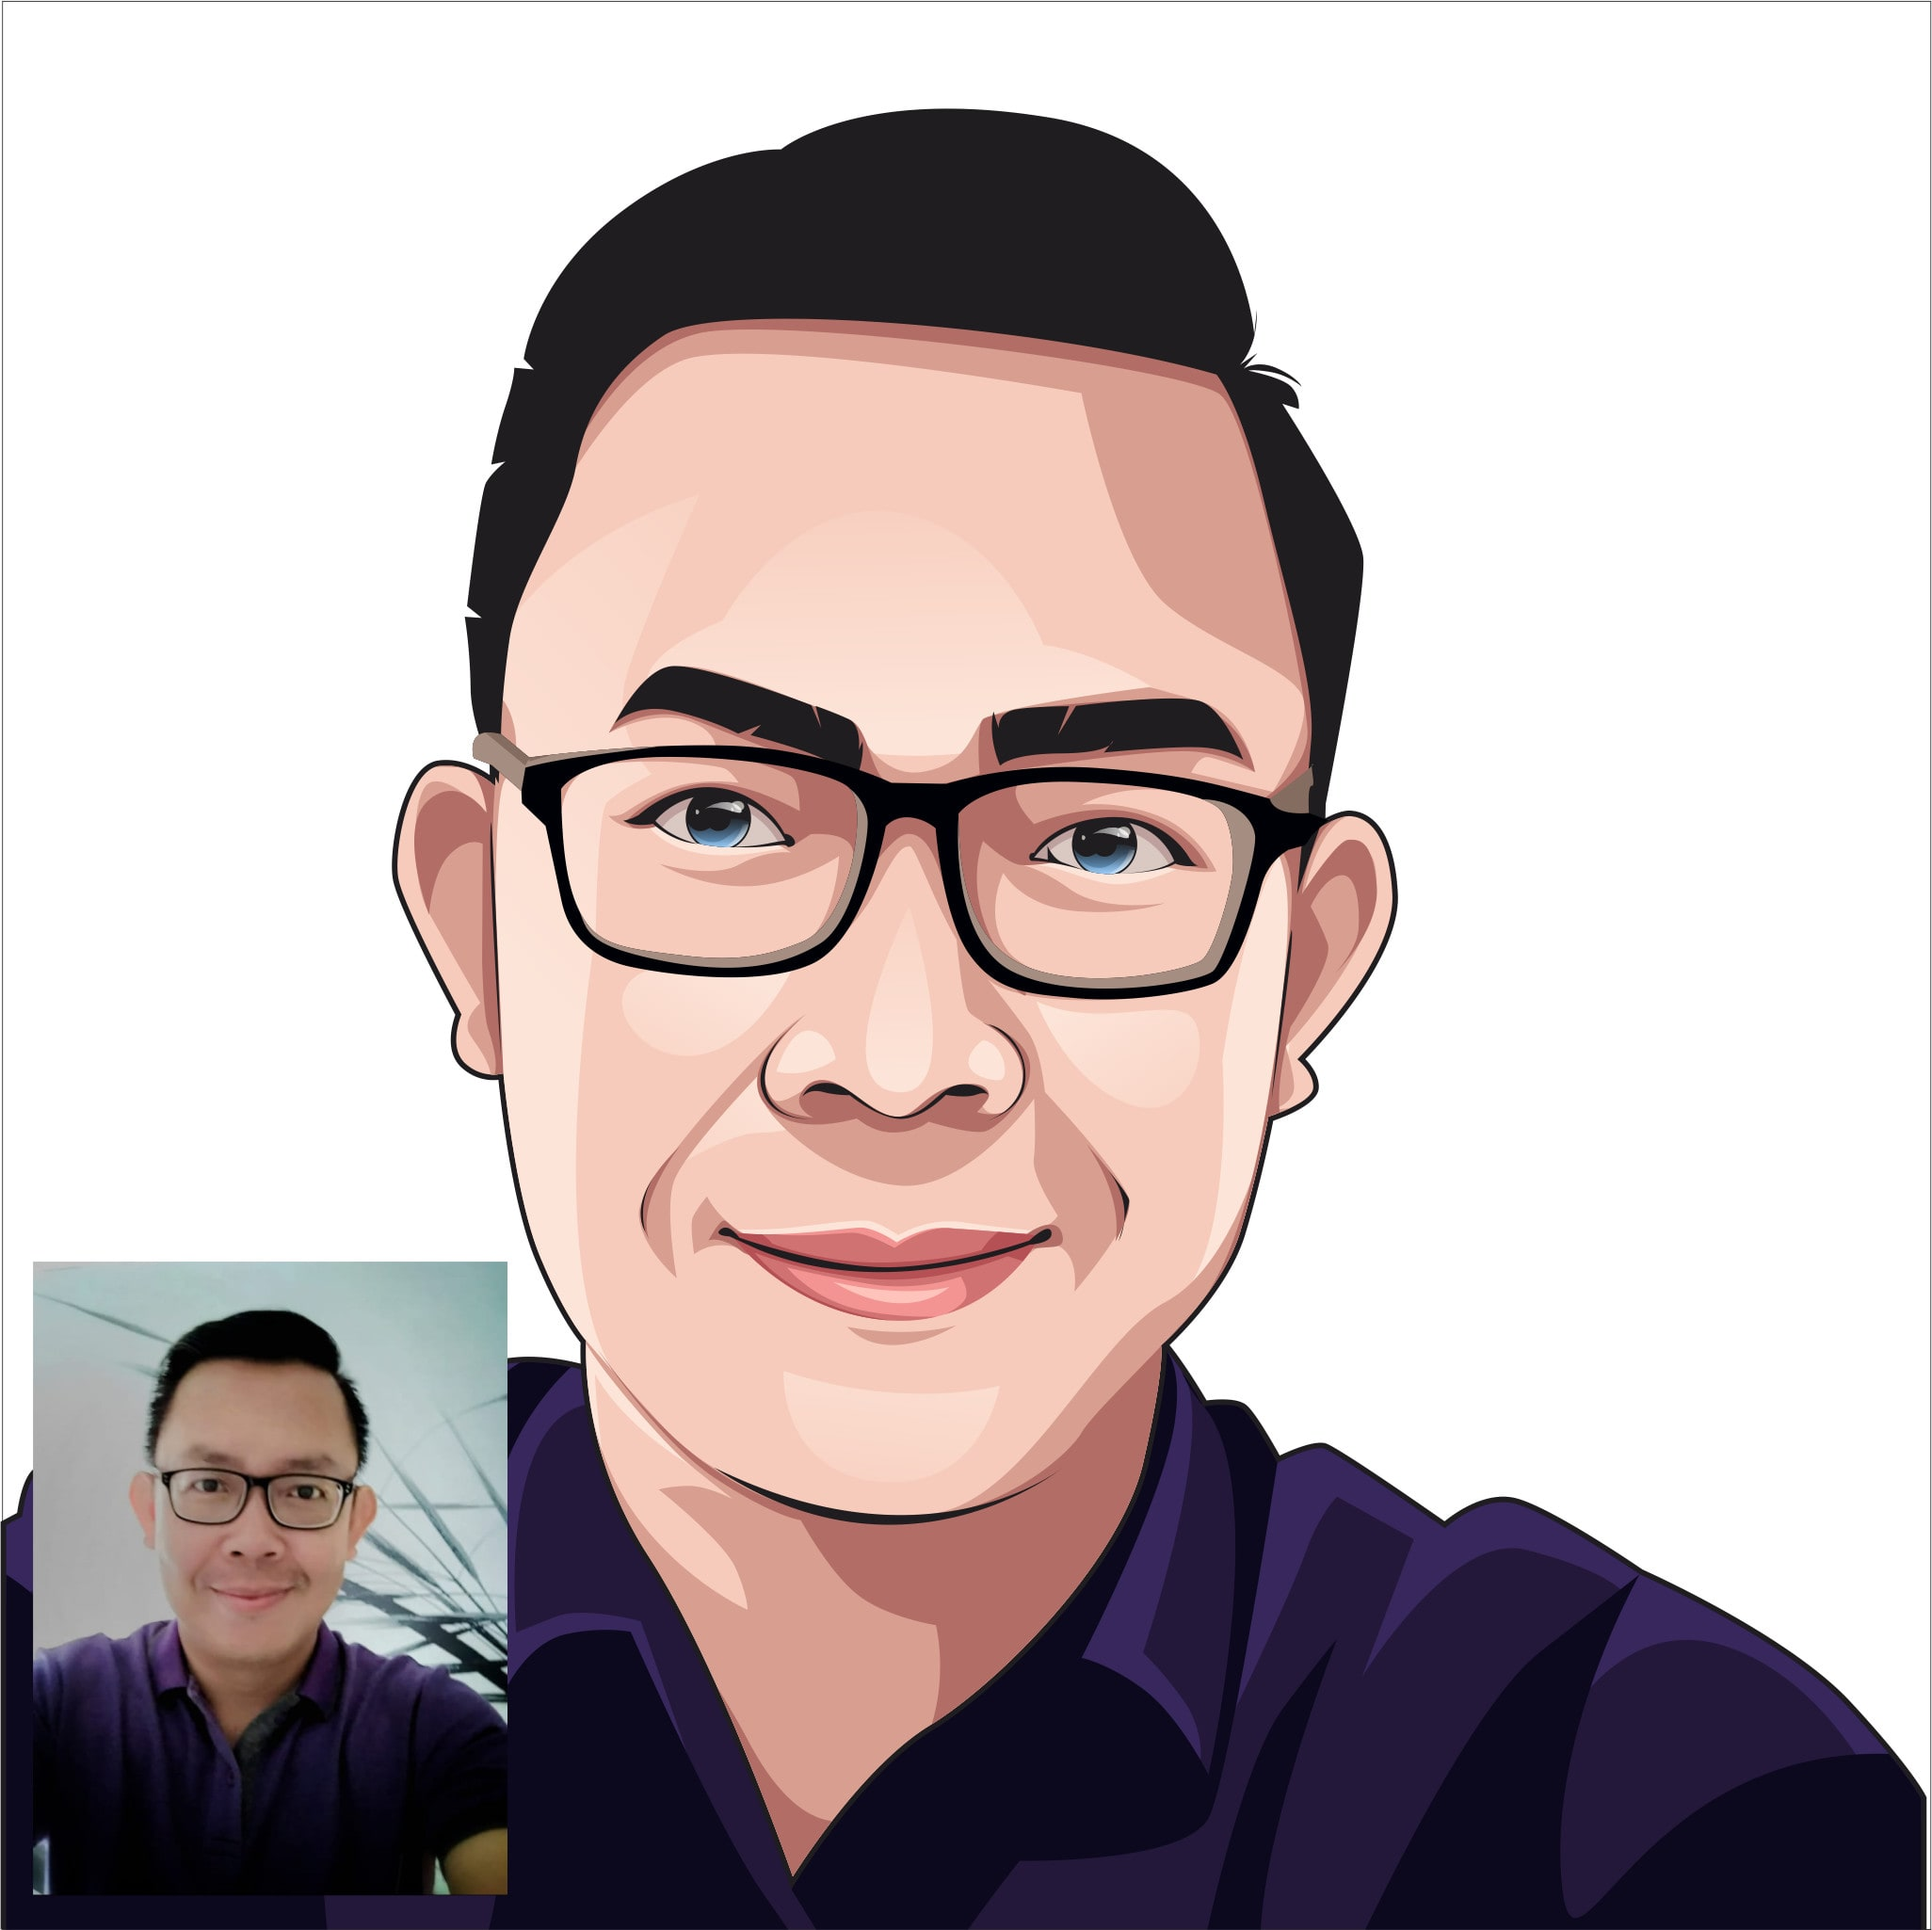 Make Best Cartoon Or Vector Art With Your Picture By Tlioart123 Fiverr